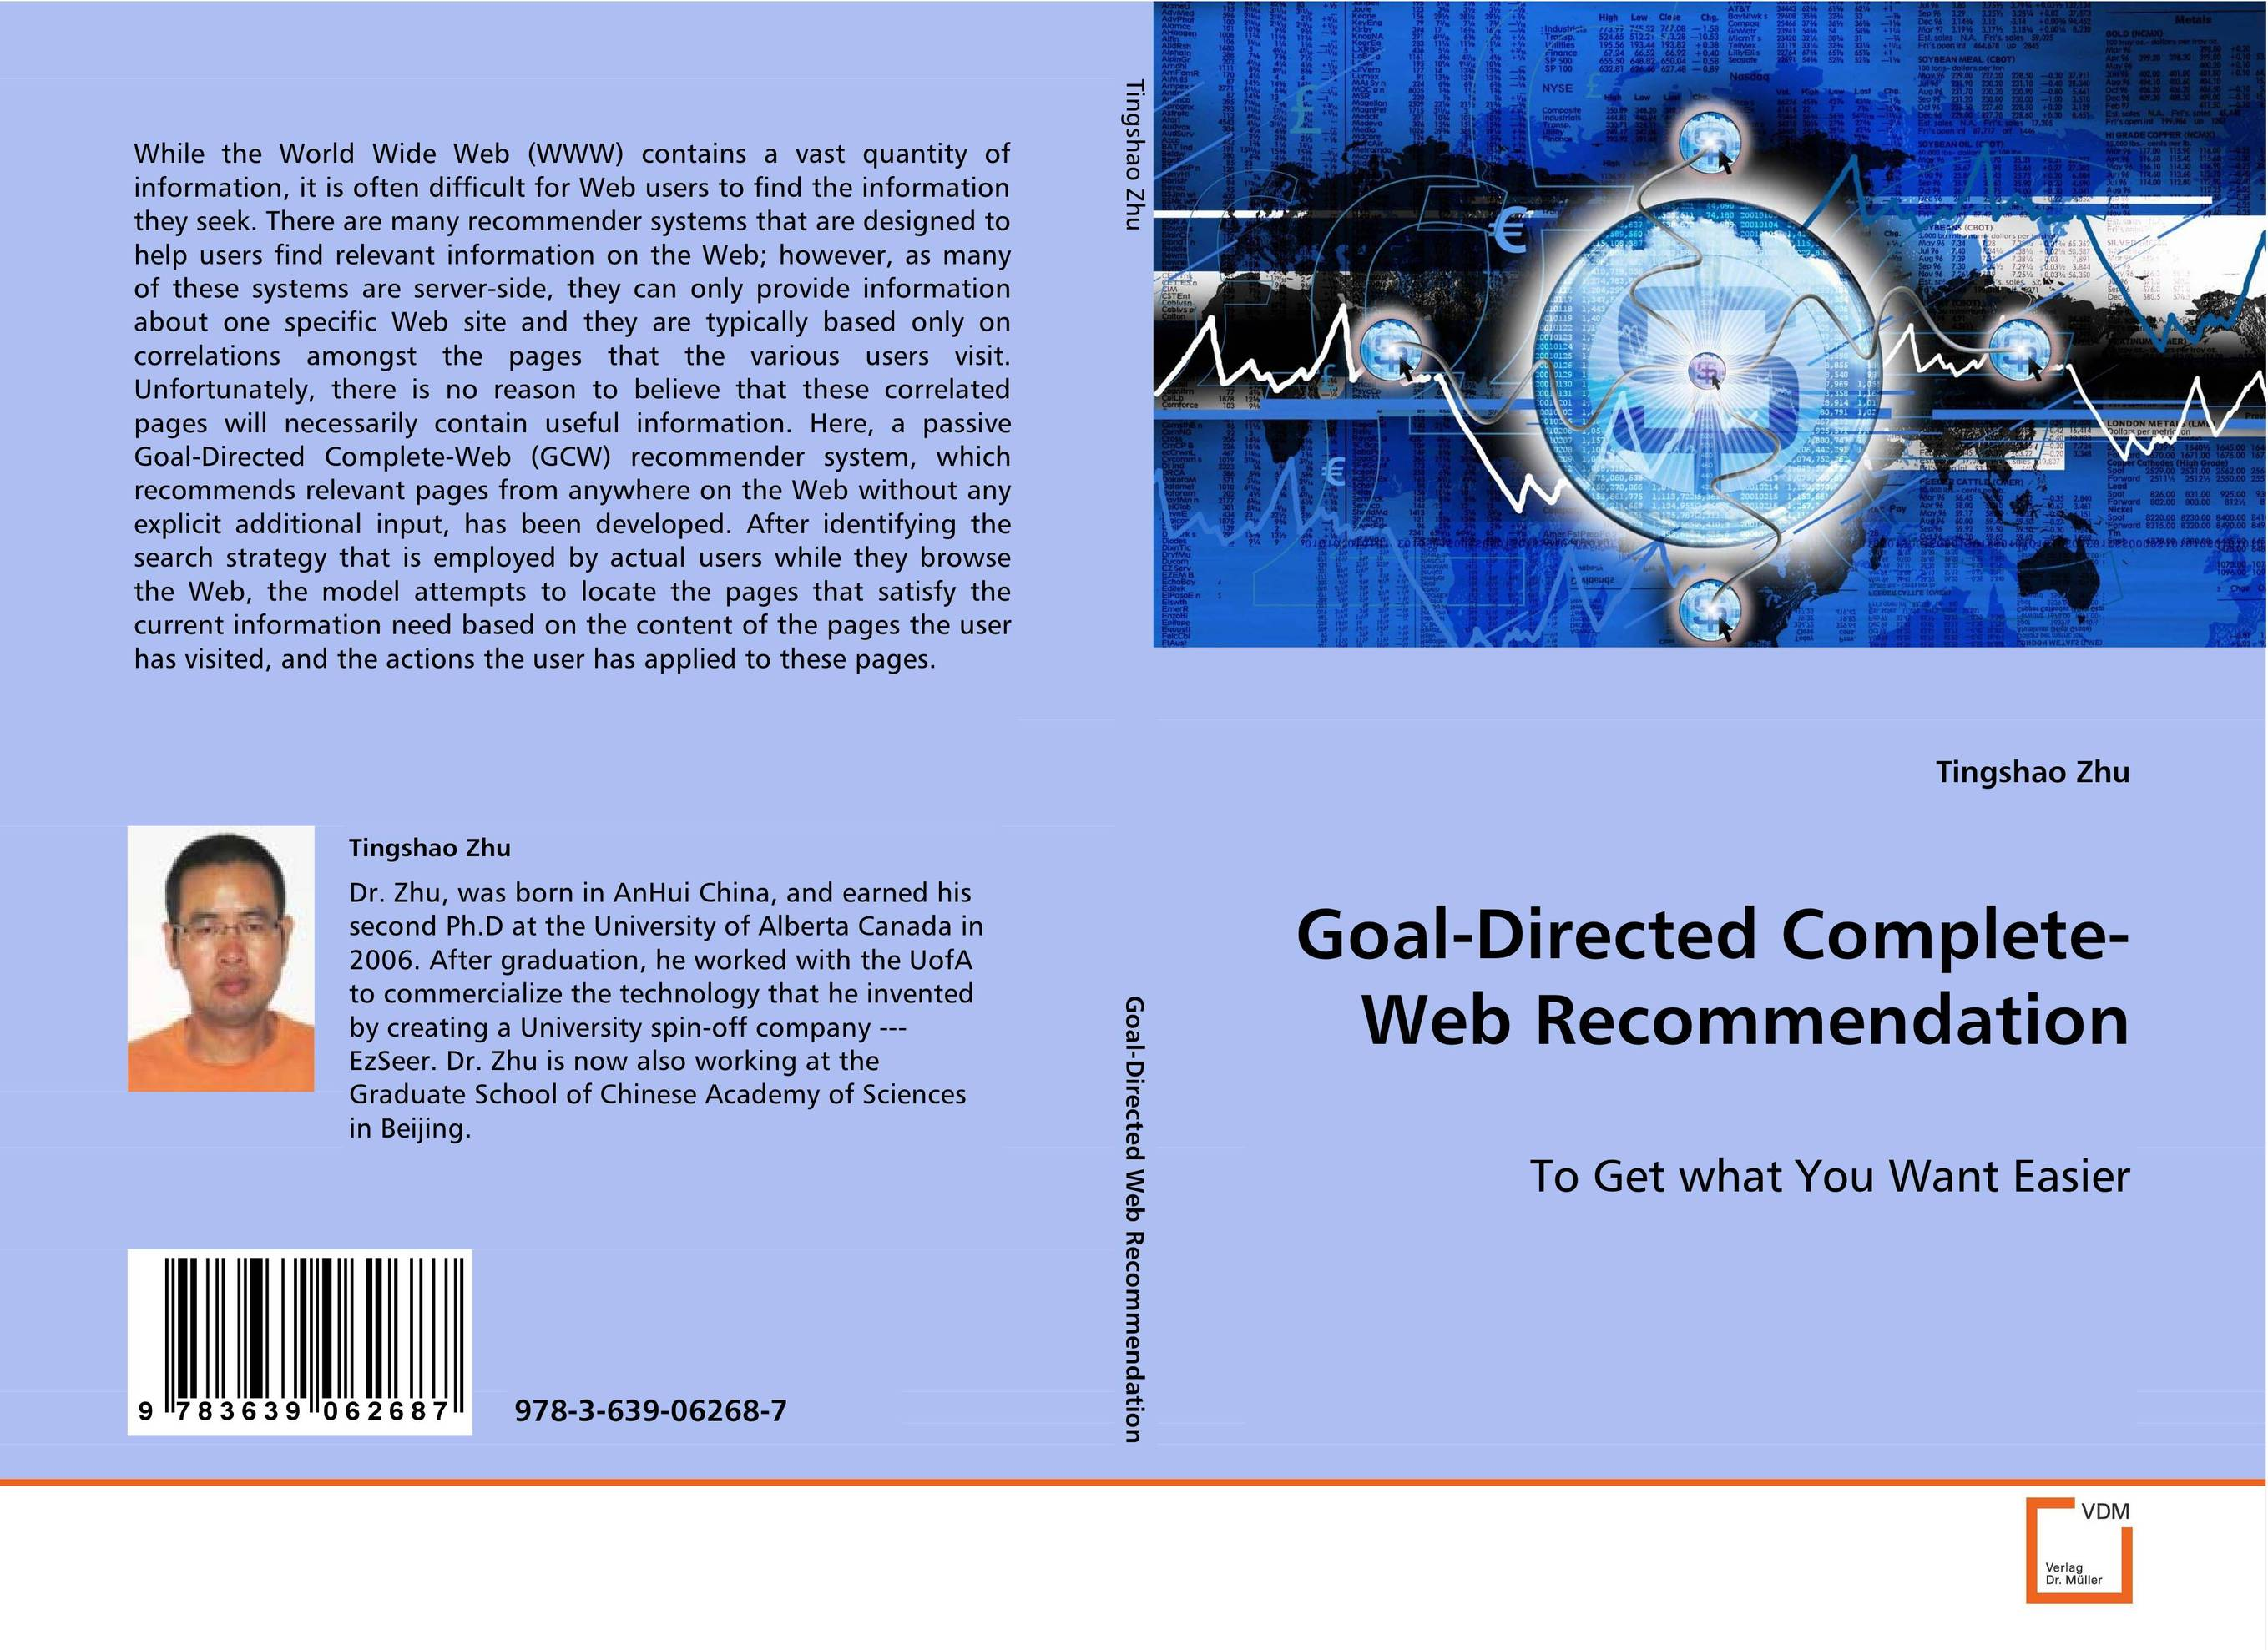 Goal-Directed Complete-Web Recommendation goal directed complete web recommendation